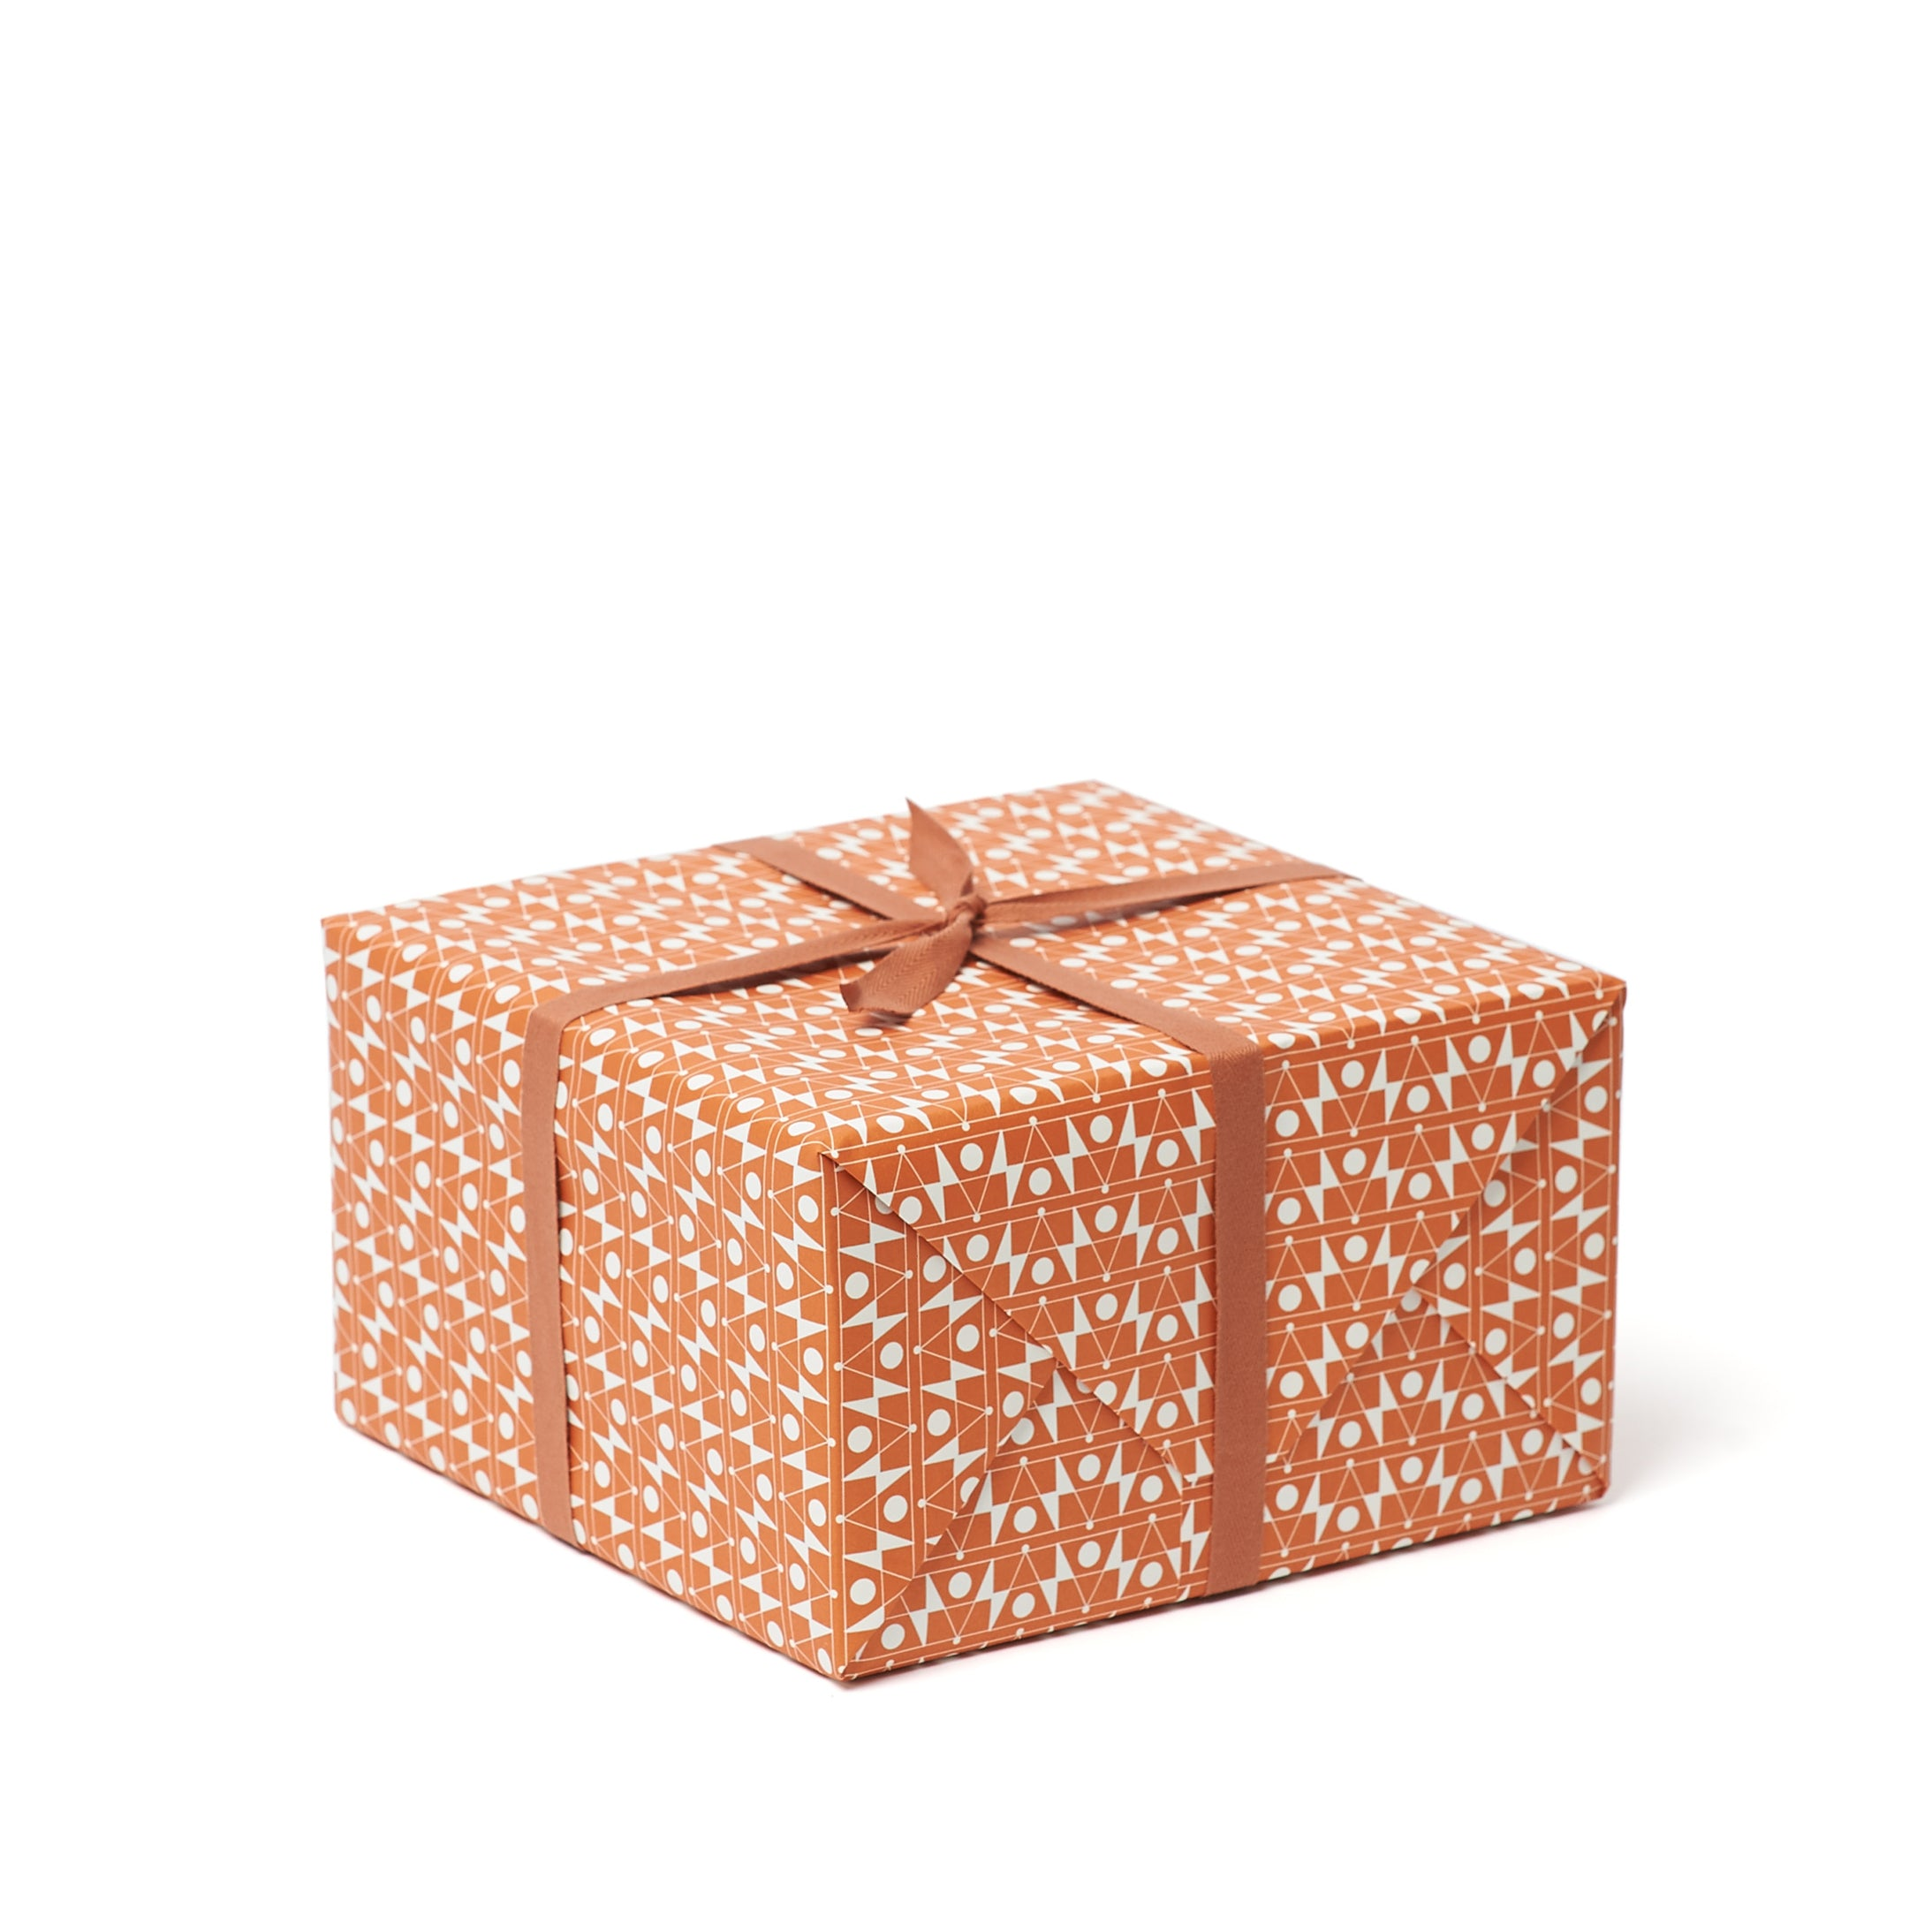 FREQUENCY Patterned Paper <br>Orange - Esme Winter